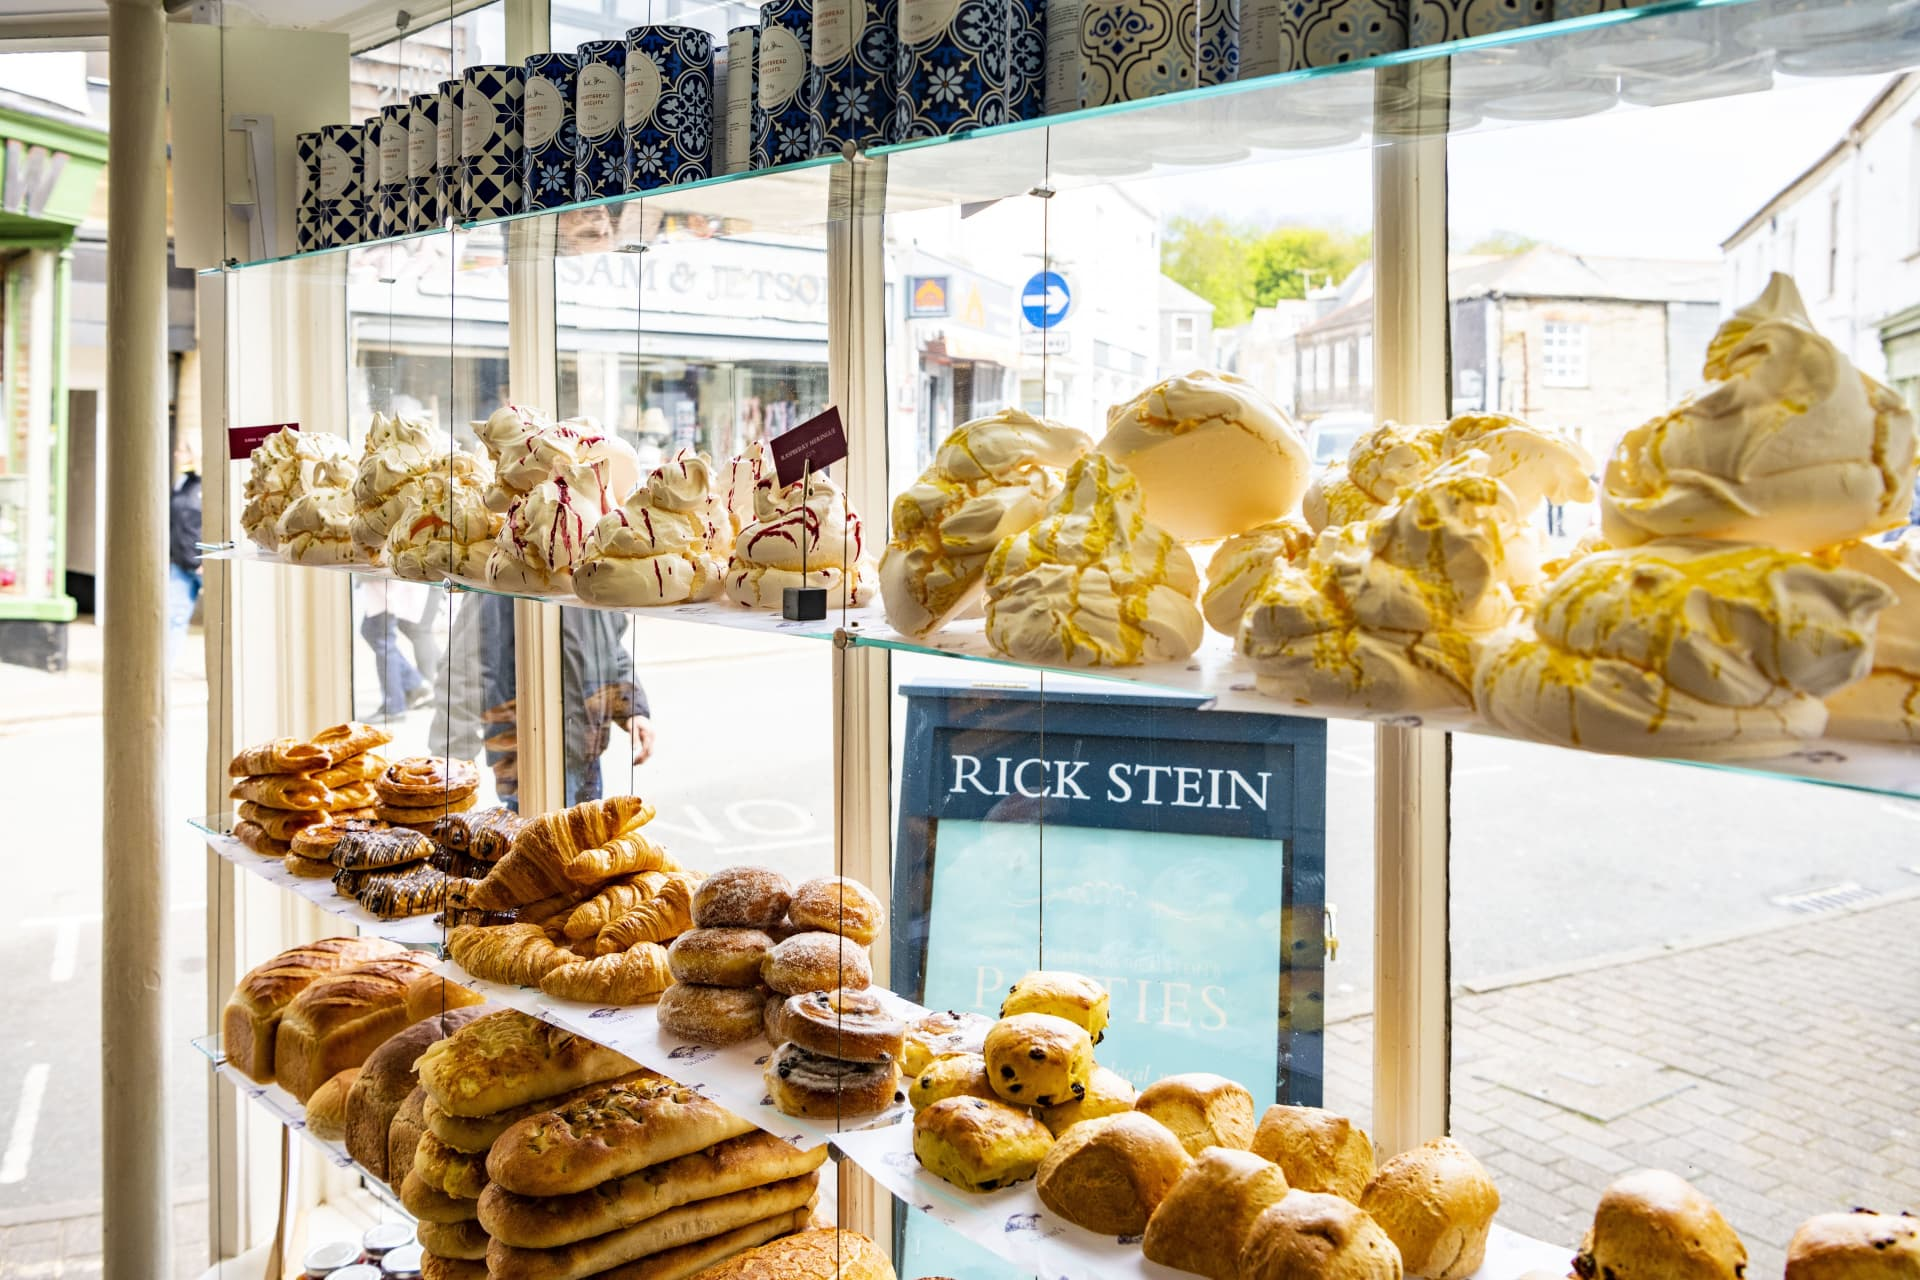 Rick Stein Patisserie in Padstow, loaded to the brim with freshly baked pastries, cakes and cornish pies.